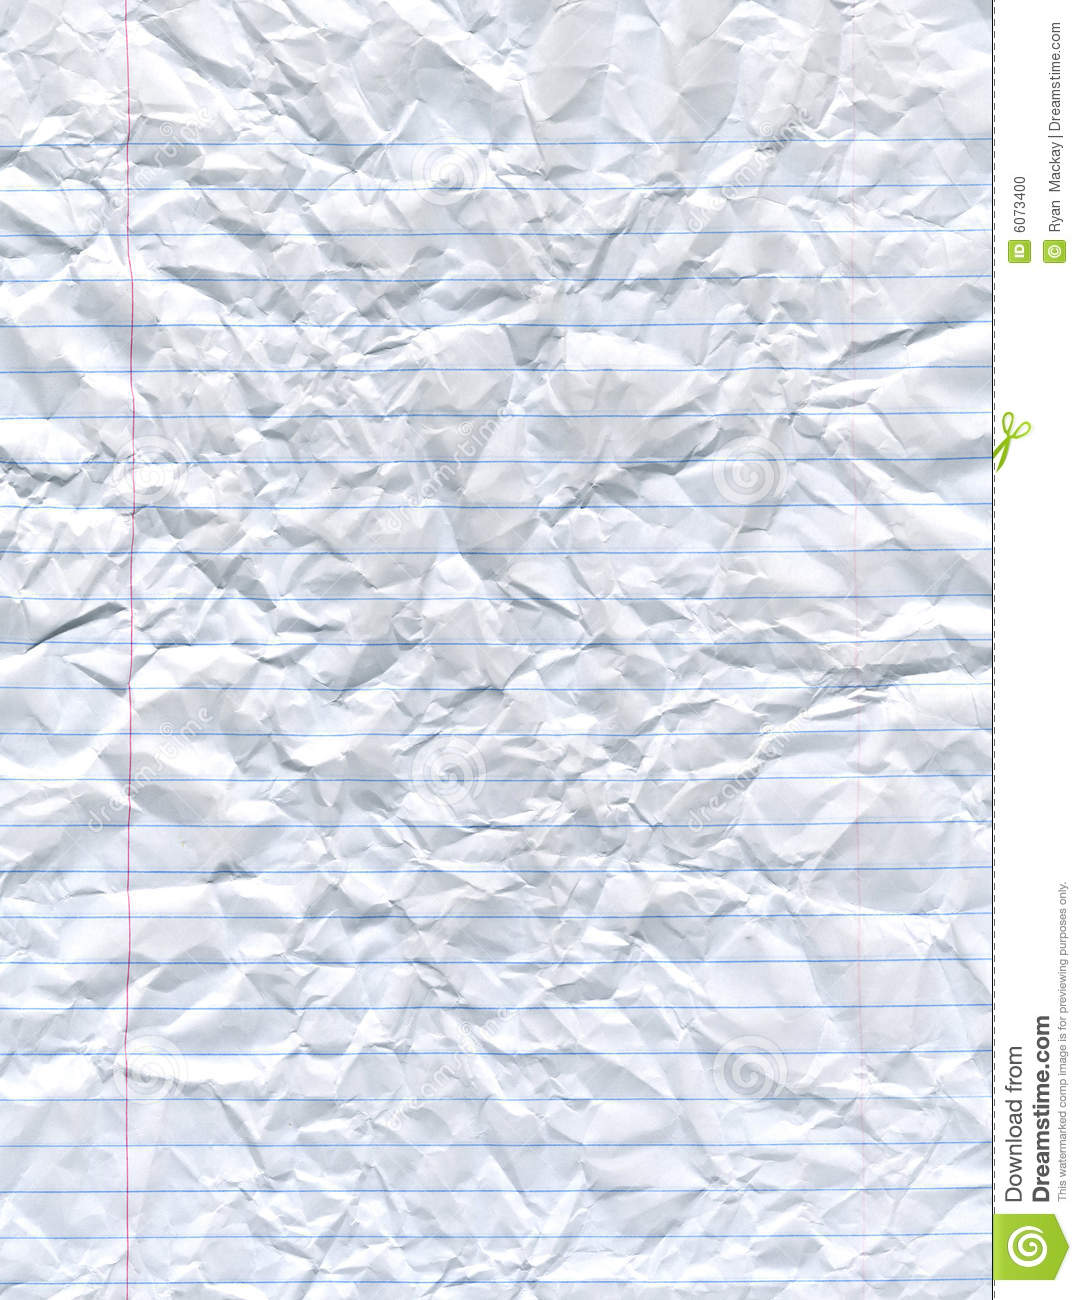 notebook paper stock photo. image of stationery, concept - 6073400